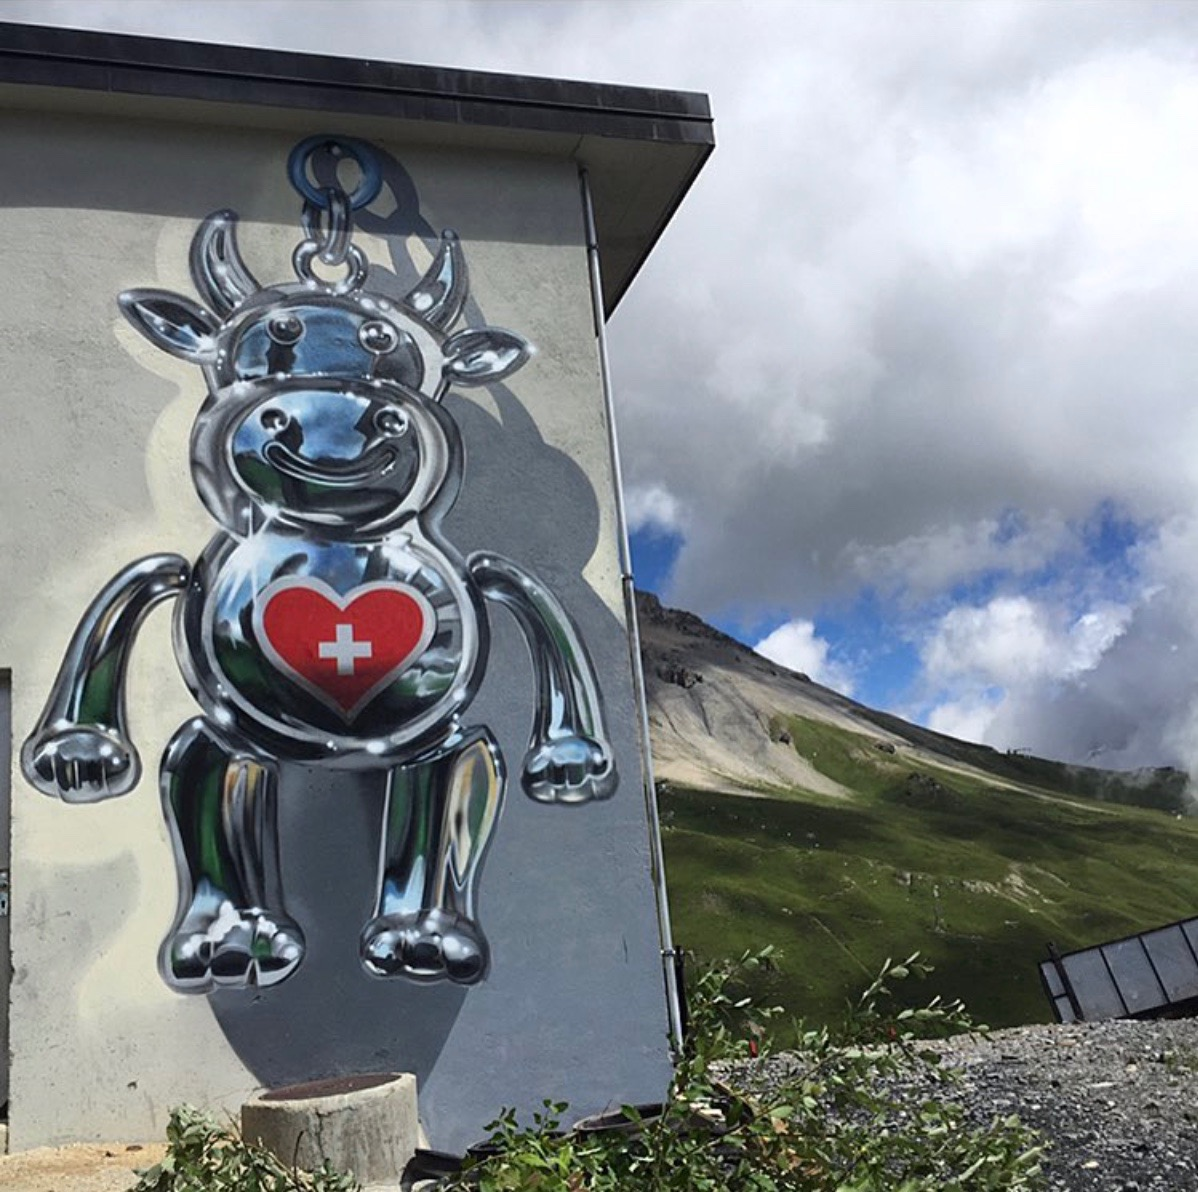 Fanakapan for Vision Art Festival in the Swiss Alps.